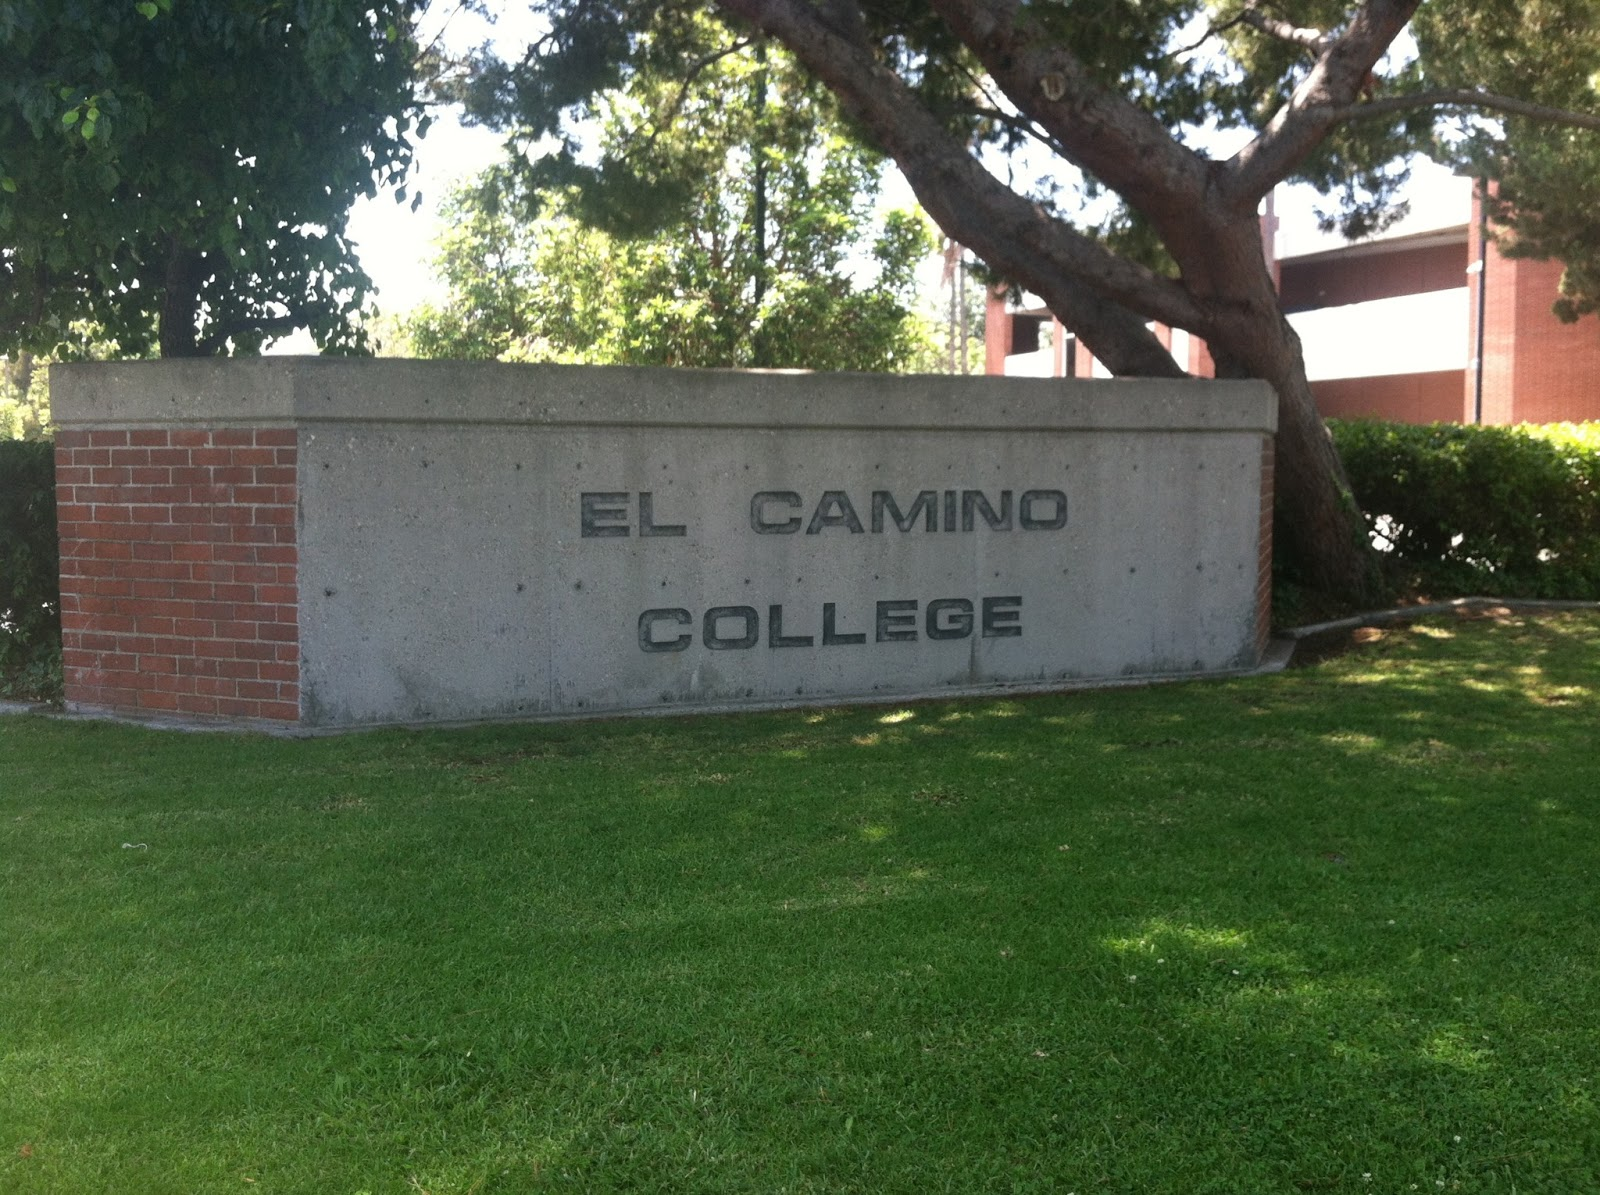 El Camino College >> The Socalgenie El Camino College Unveils Digital Archive